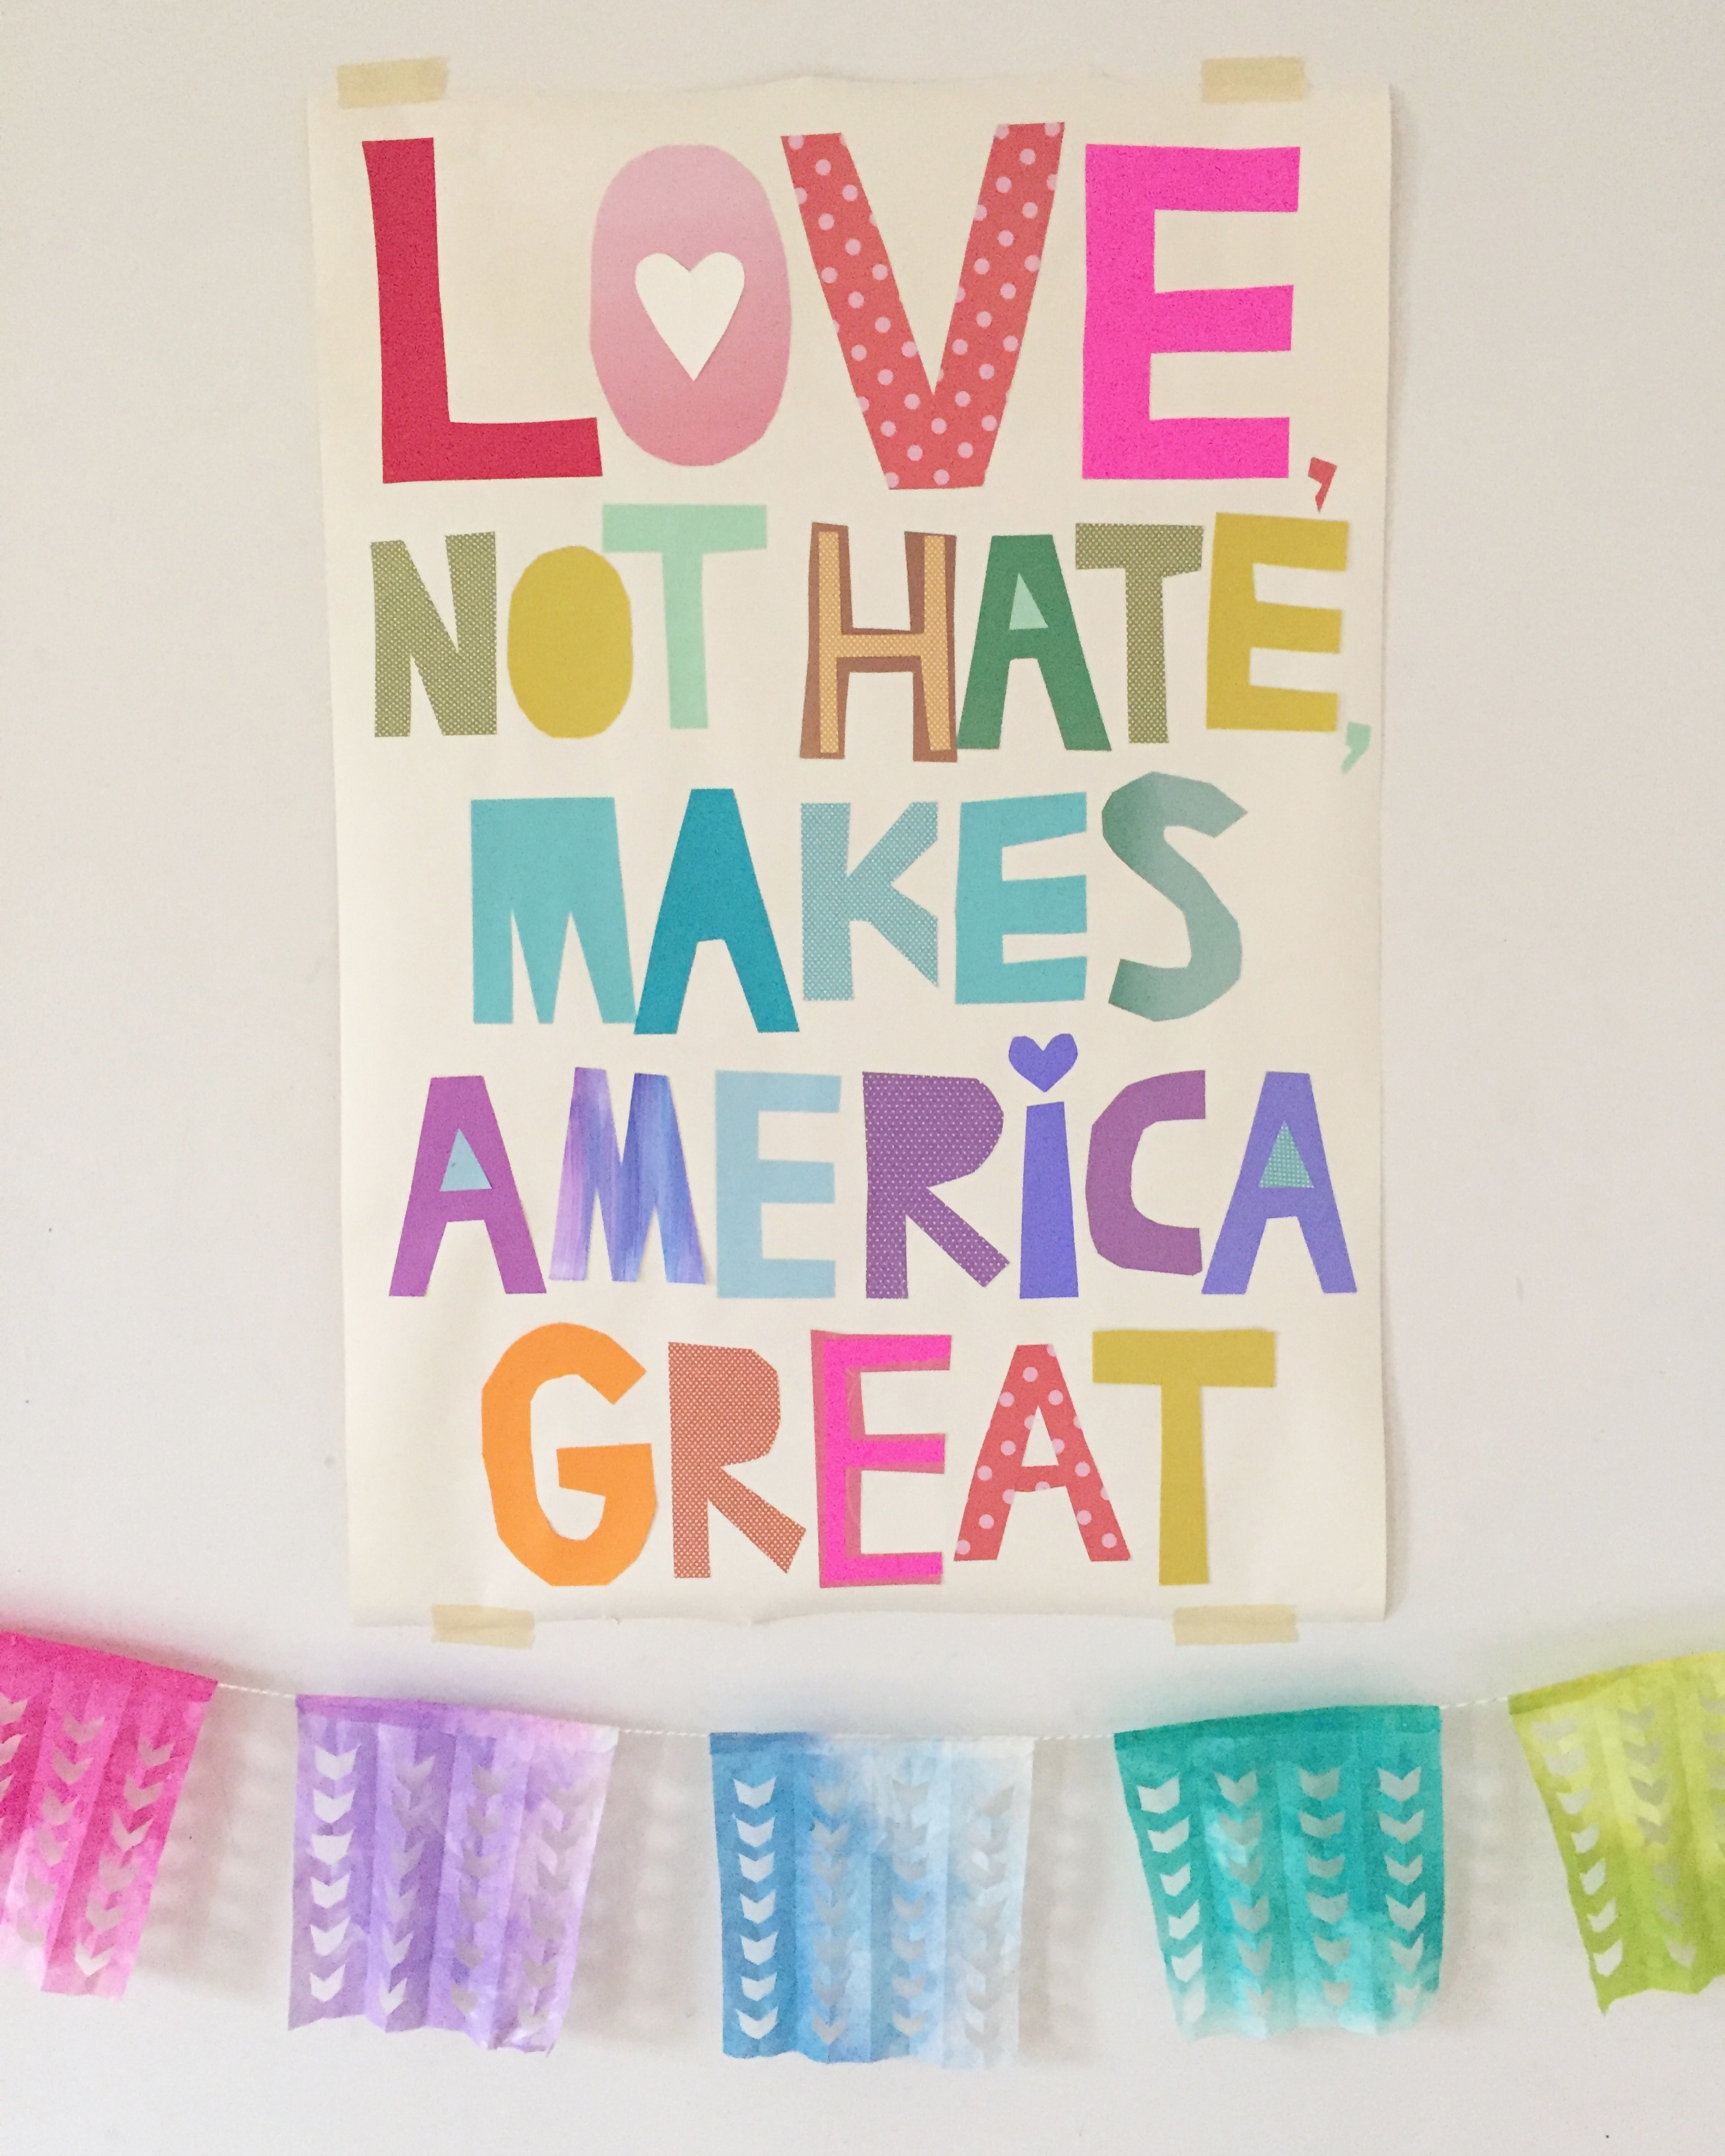 Love, not hate, makes America great // free downloadable poster